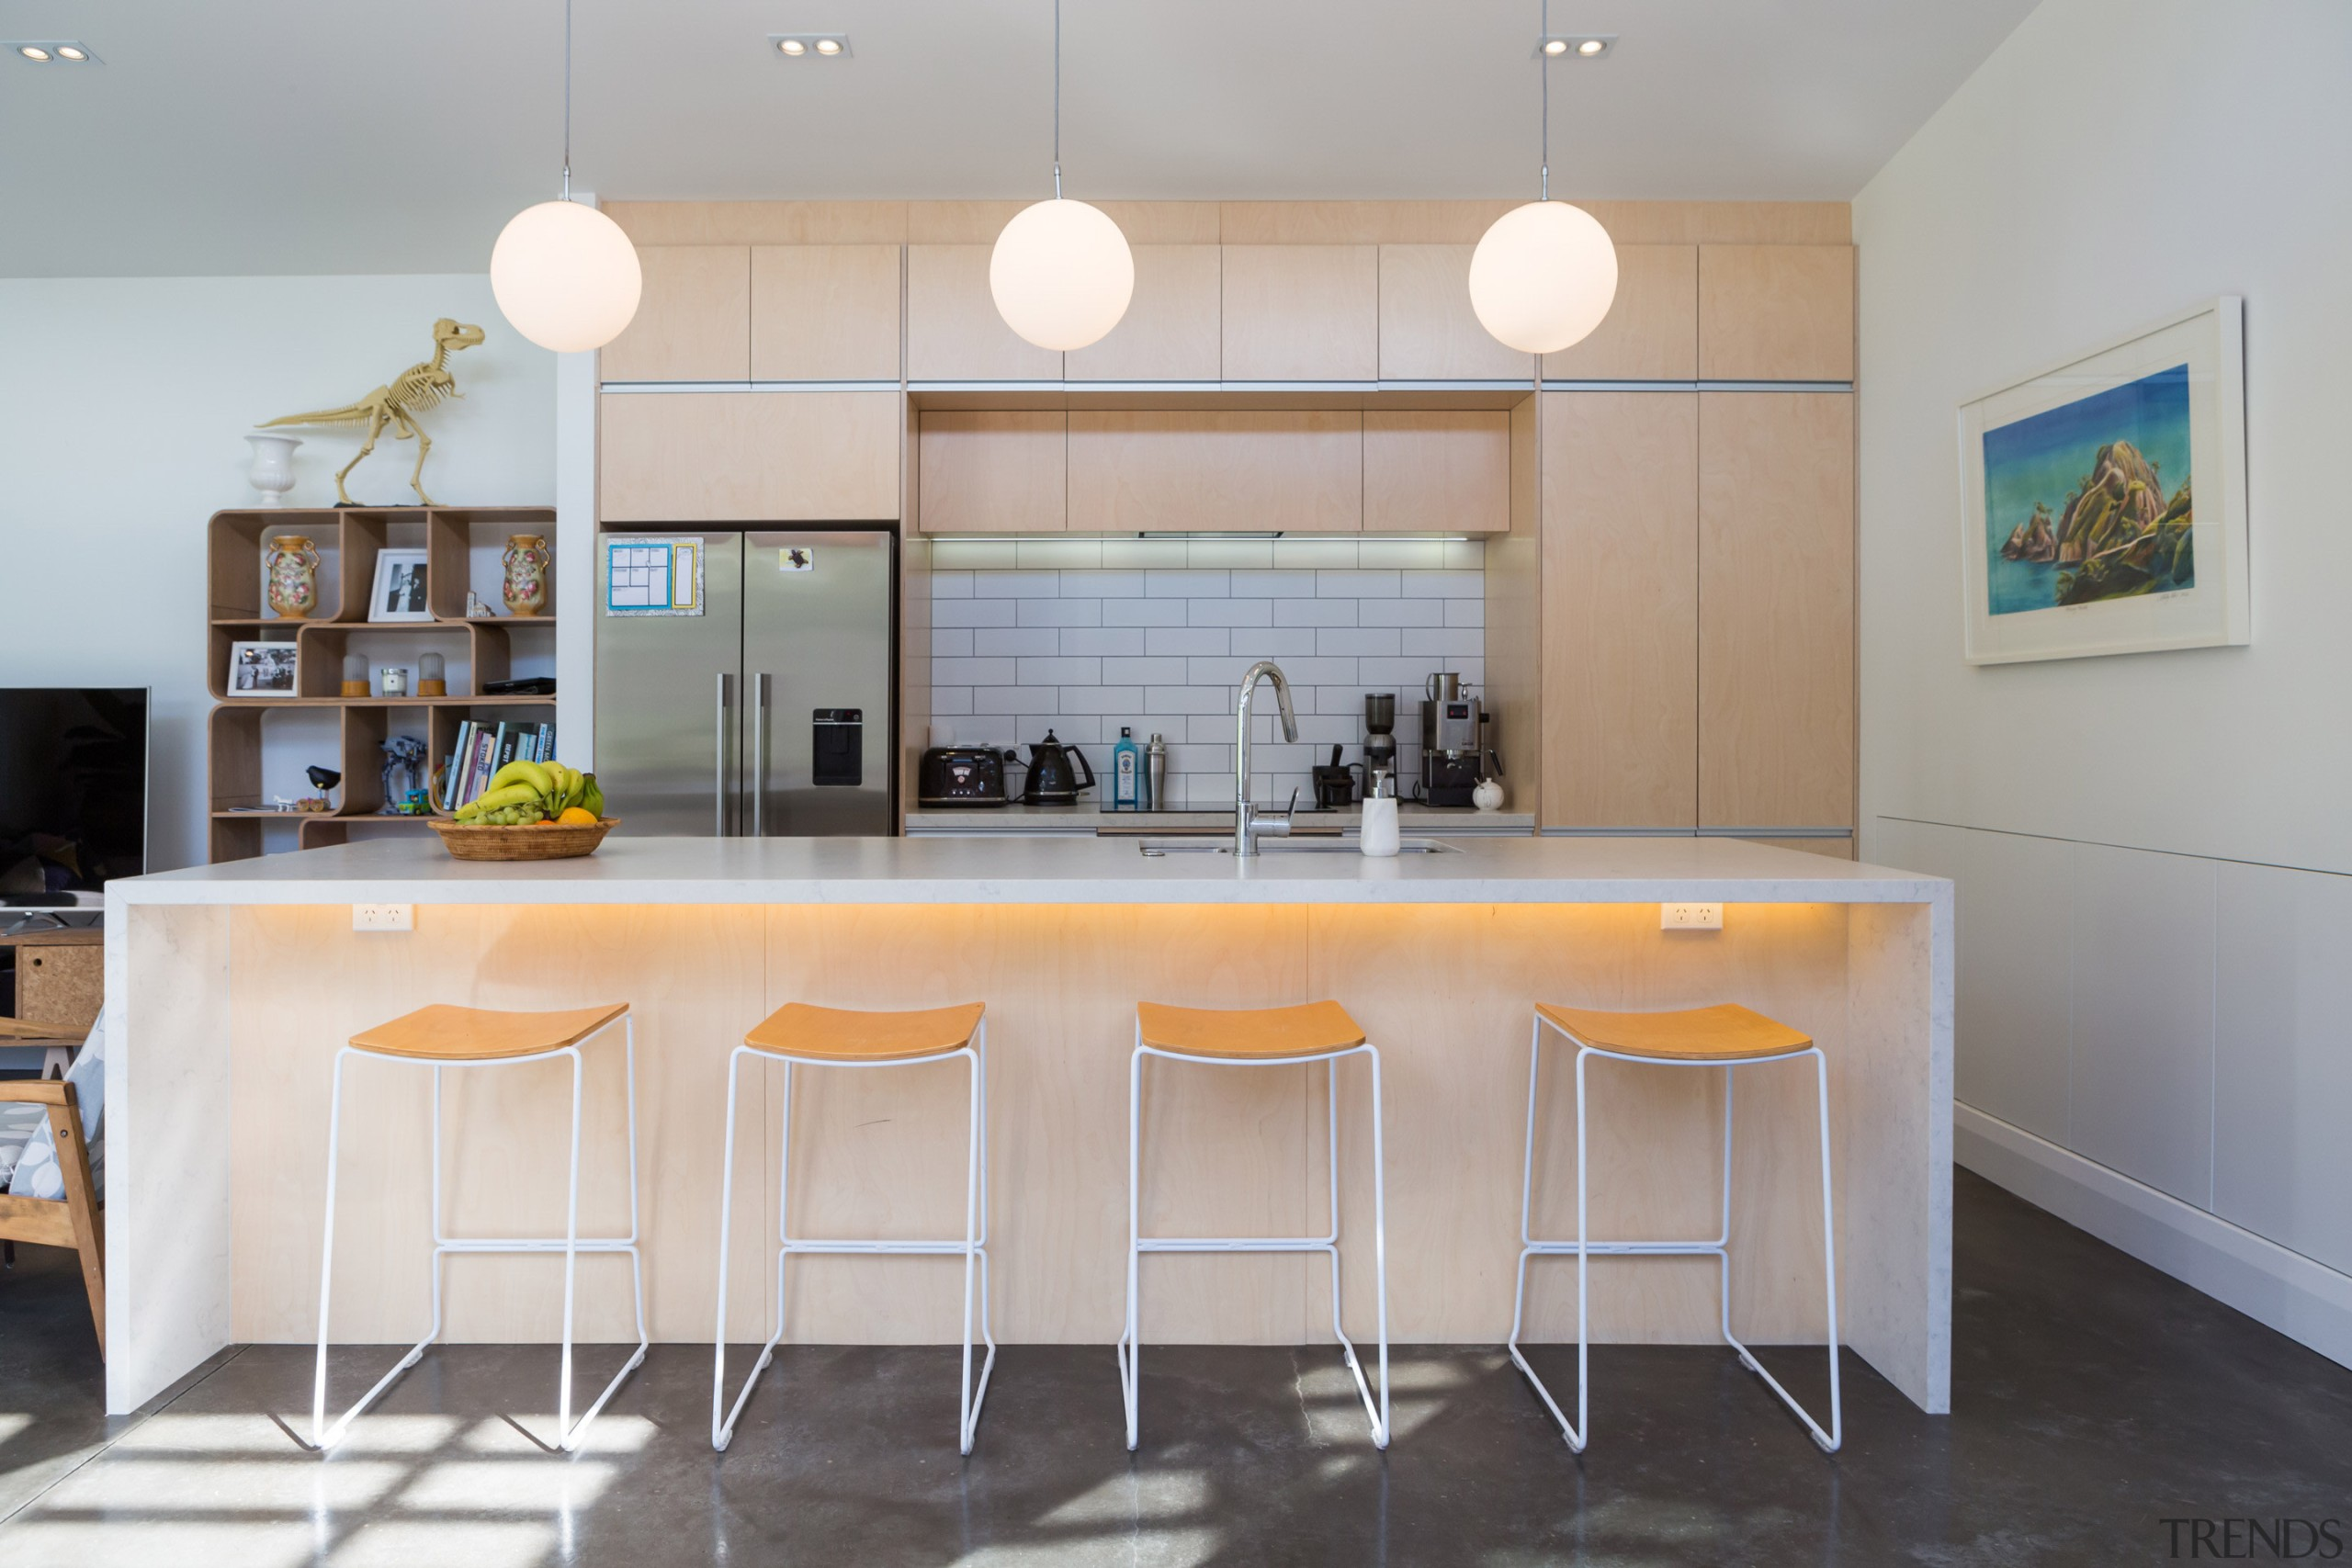 The material pallet of the kitchen was kept architecture, countertop, cuisine classique, home, interior design, kitchen, real estate, room, table, gray